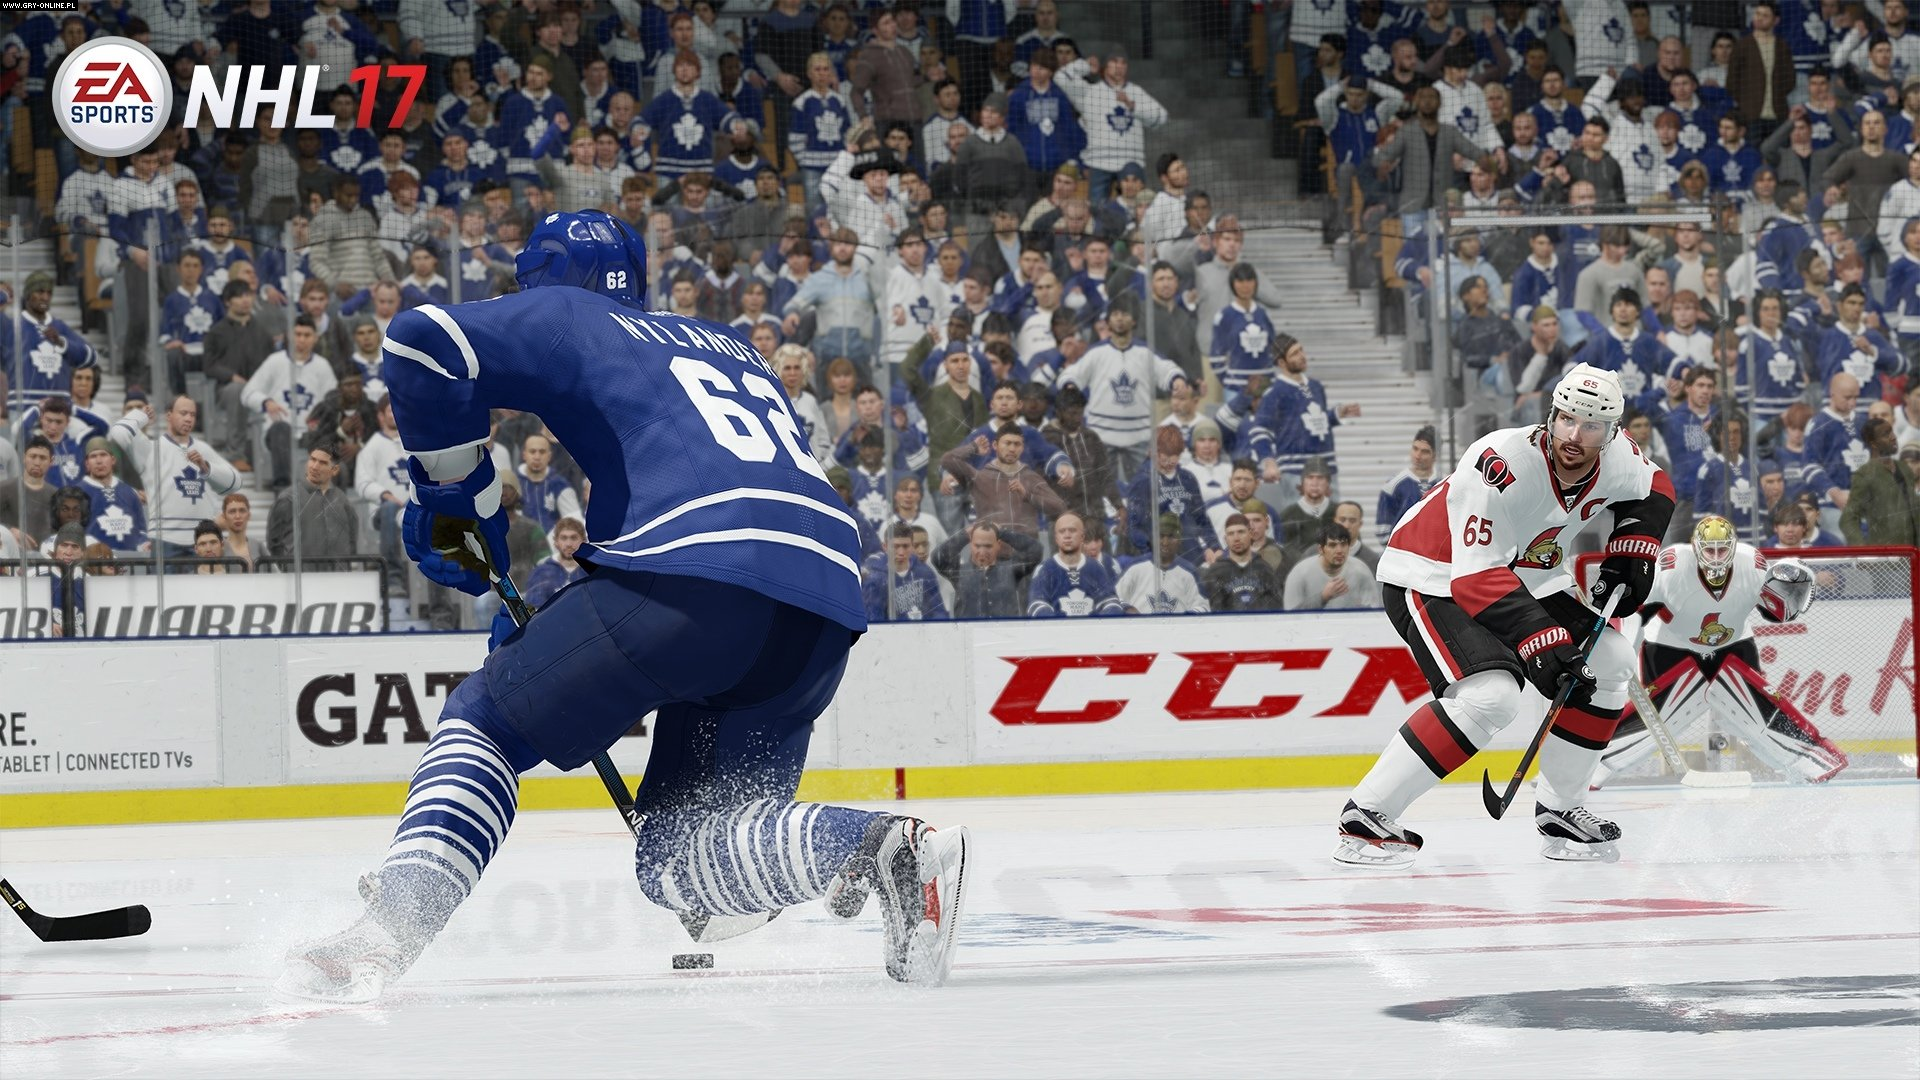 NHL 17 PS4, XONE Games Image 2/7, EA Sports, Electronic Arts Inc.